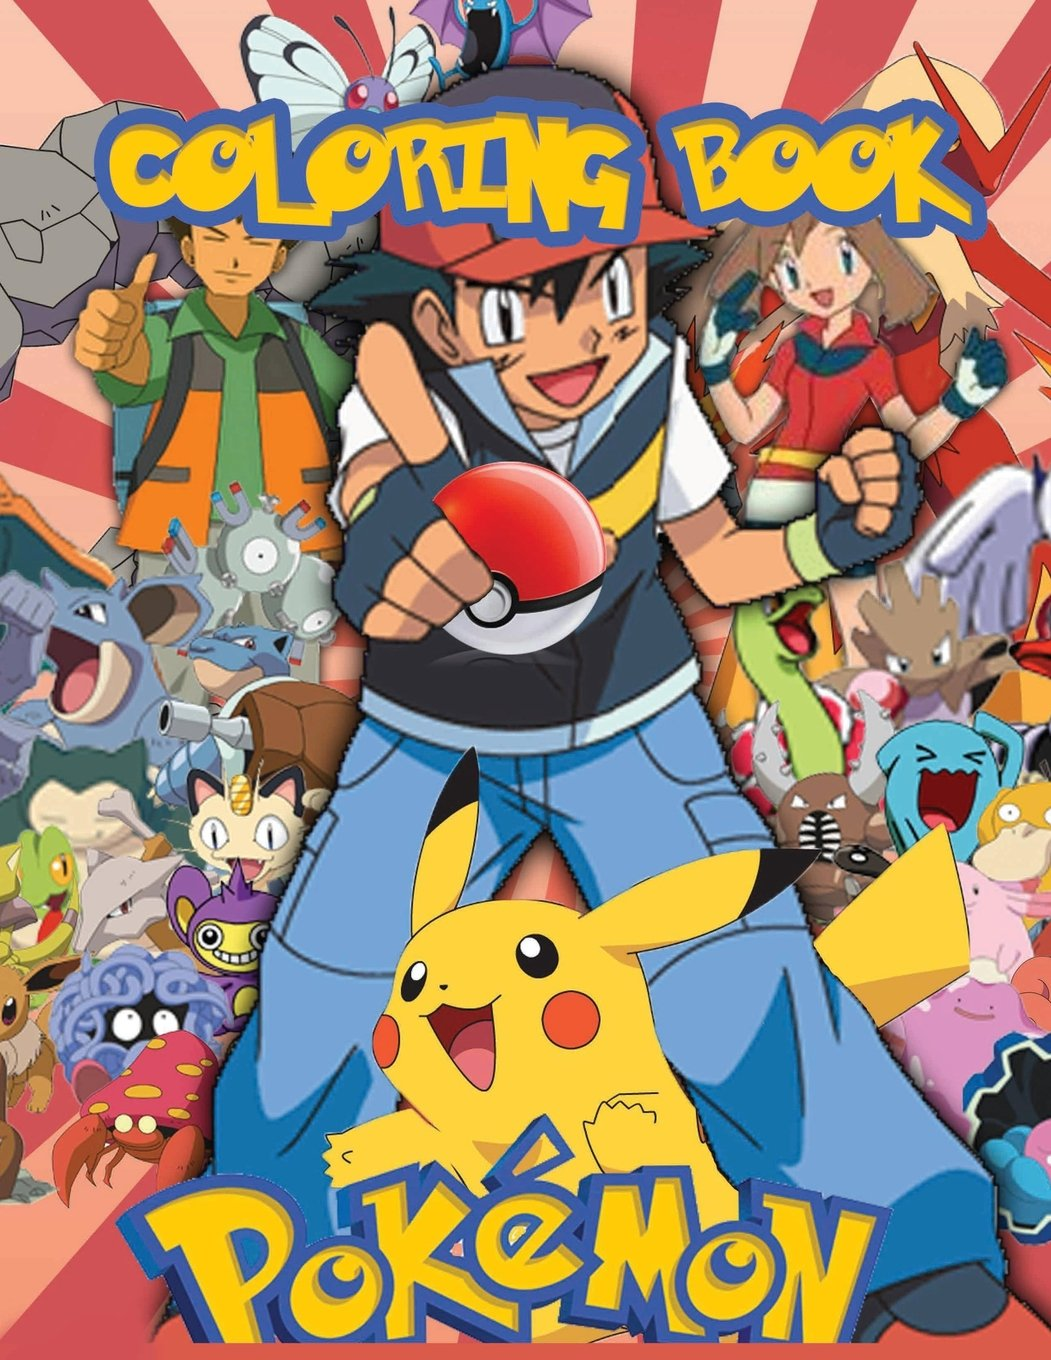 Pokémon Coloring Book: Fantastic Coloring Pages! Contains All The  Characters Of The Pokémon Saga And Pokémon GO! Paperback – June 6, 2018